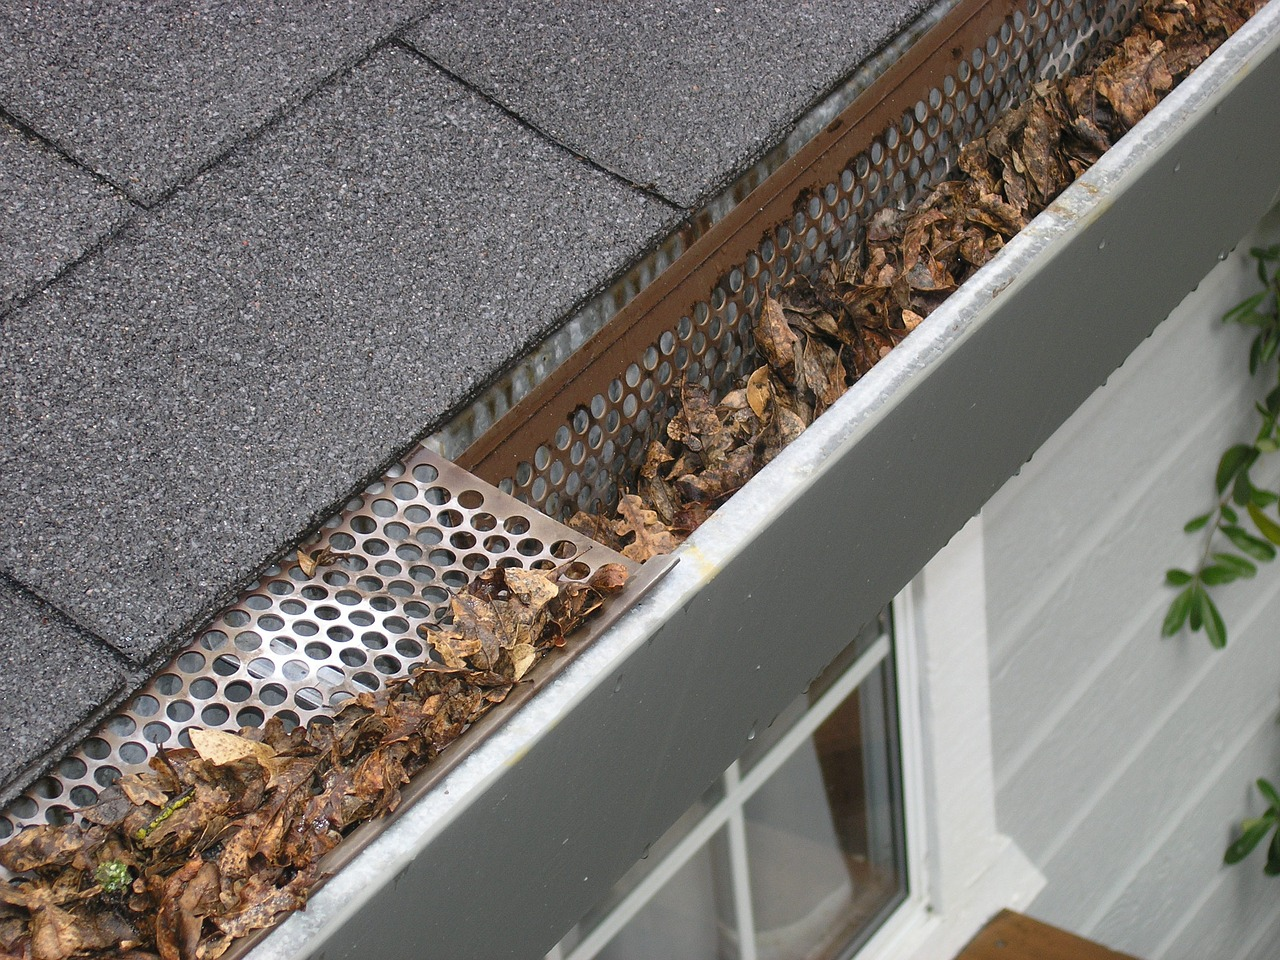 image - Finding the Best Gutter Guards for Your Home